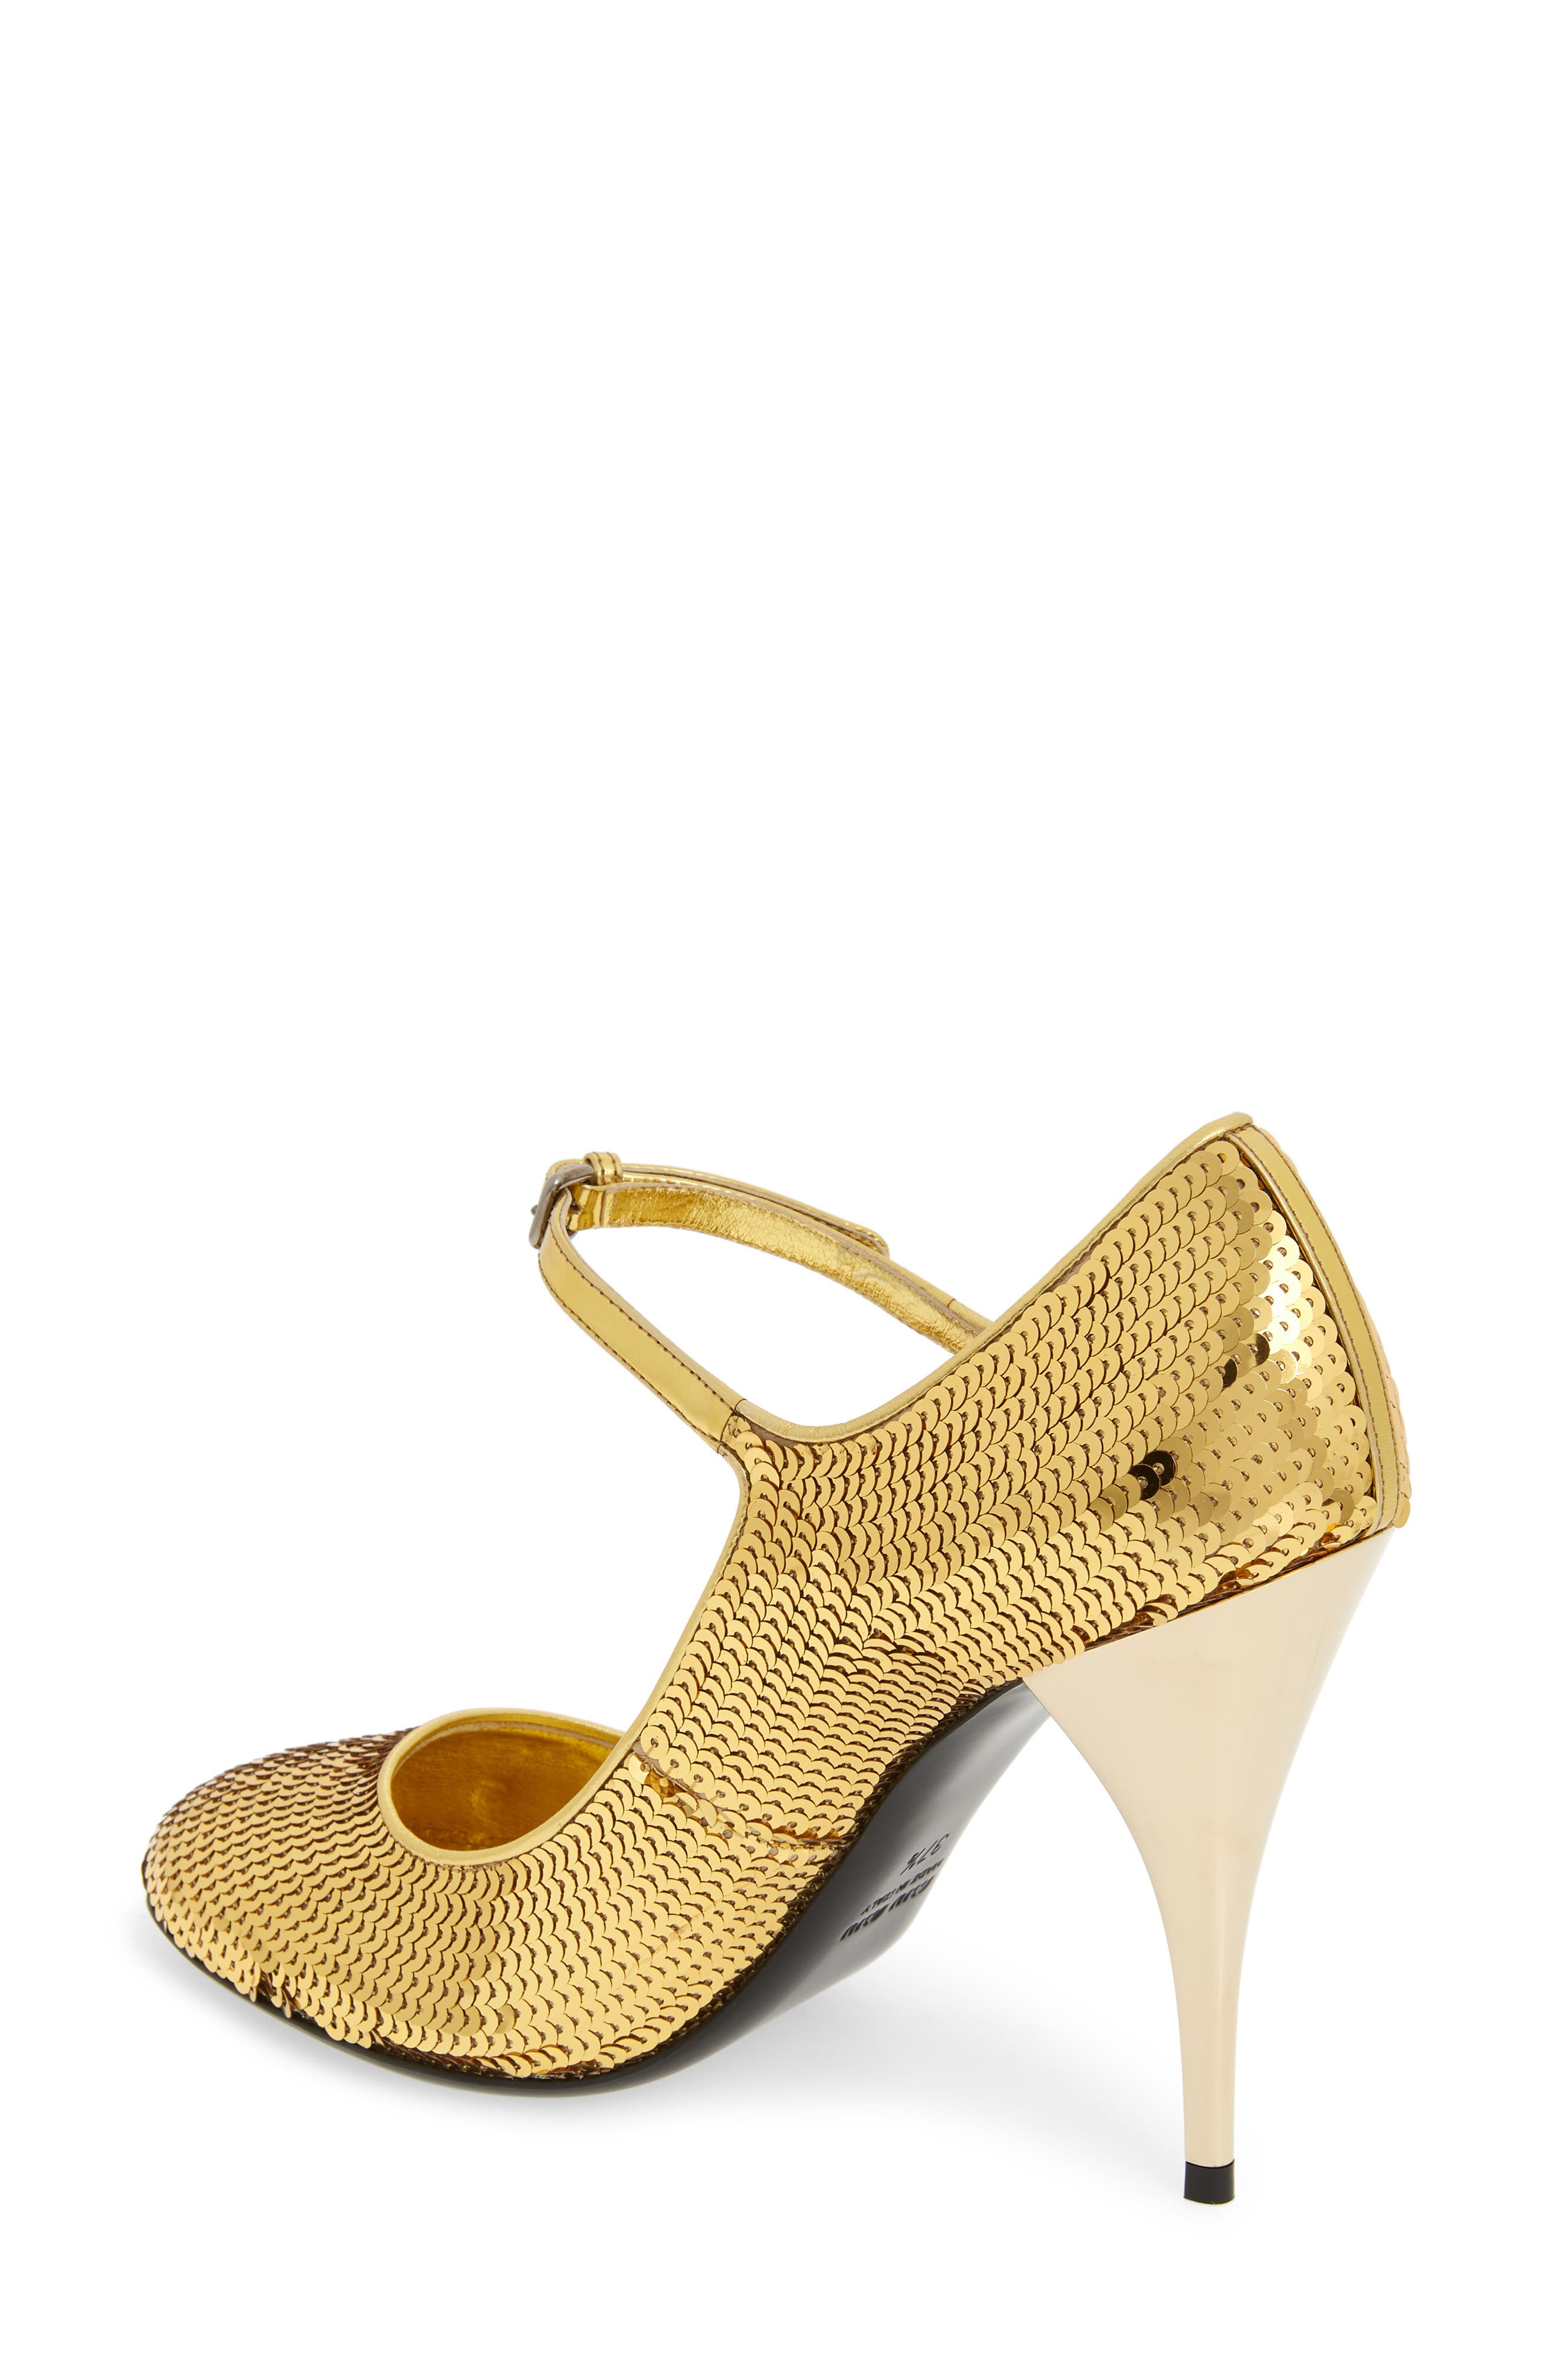 Sequin Mary Jane Pump,                             Alternate thumbnail 2, color,                             GOLD